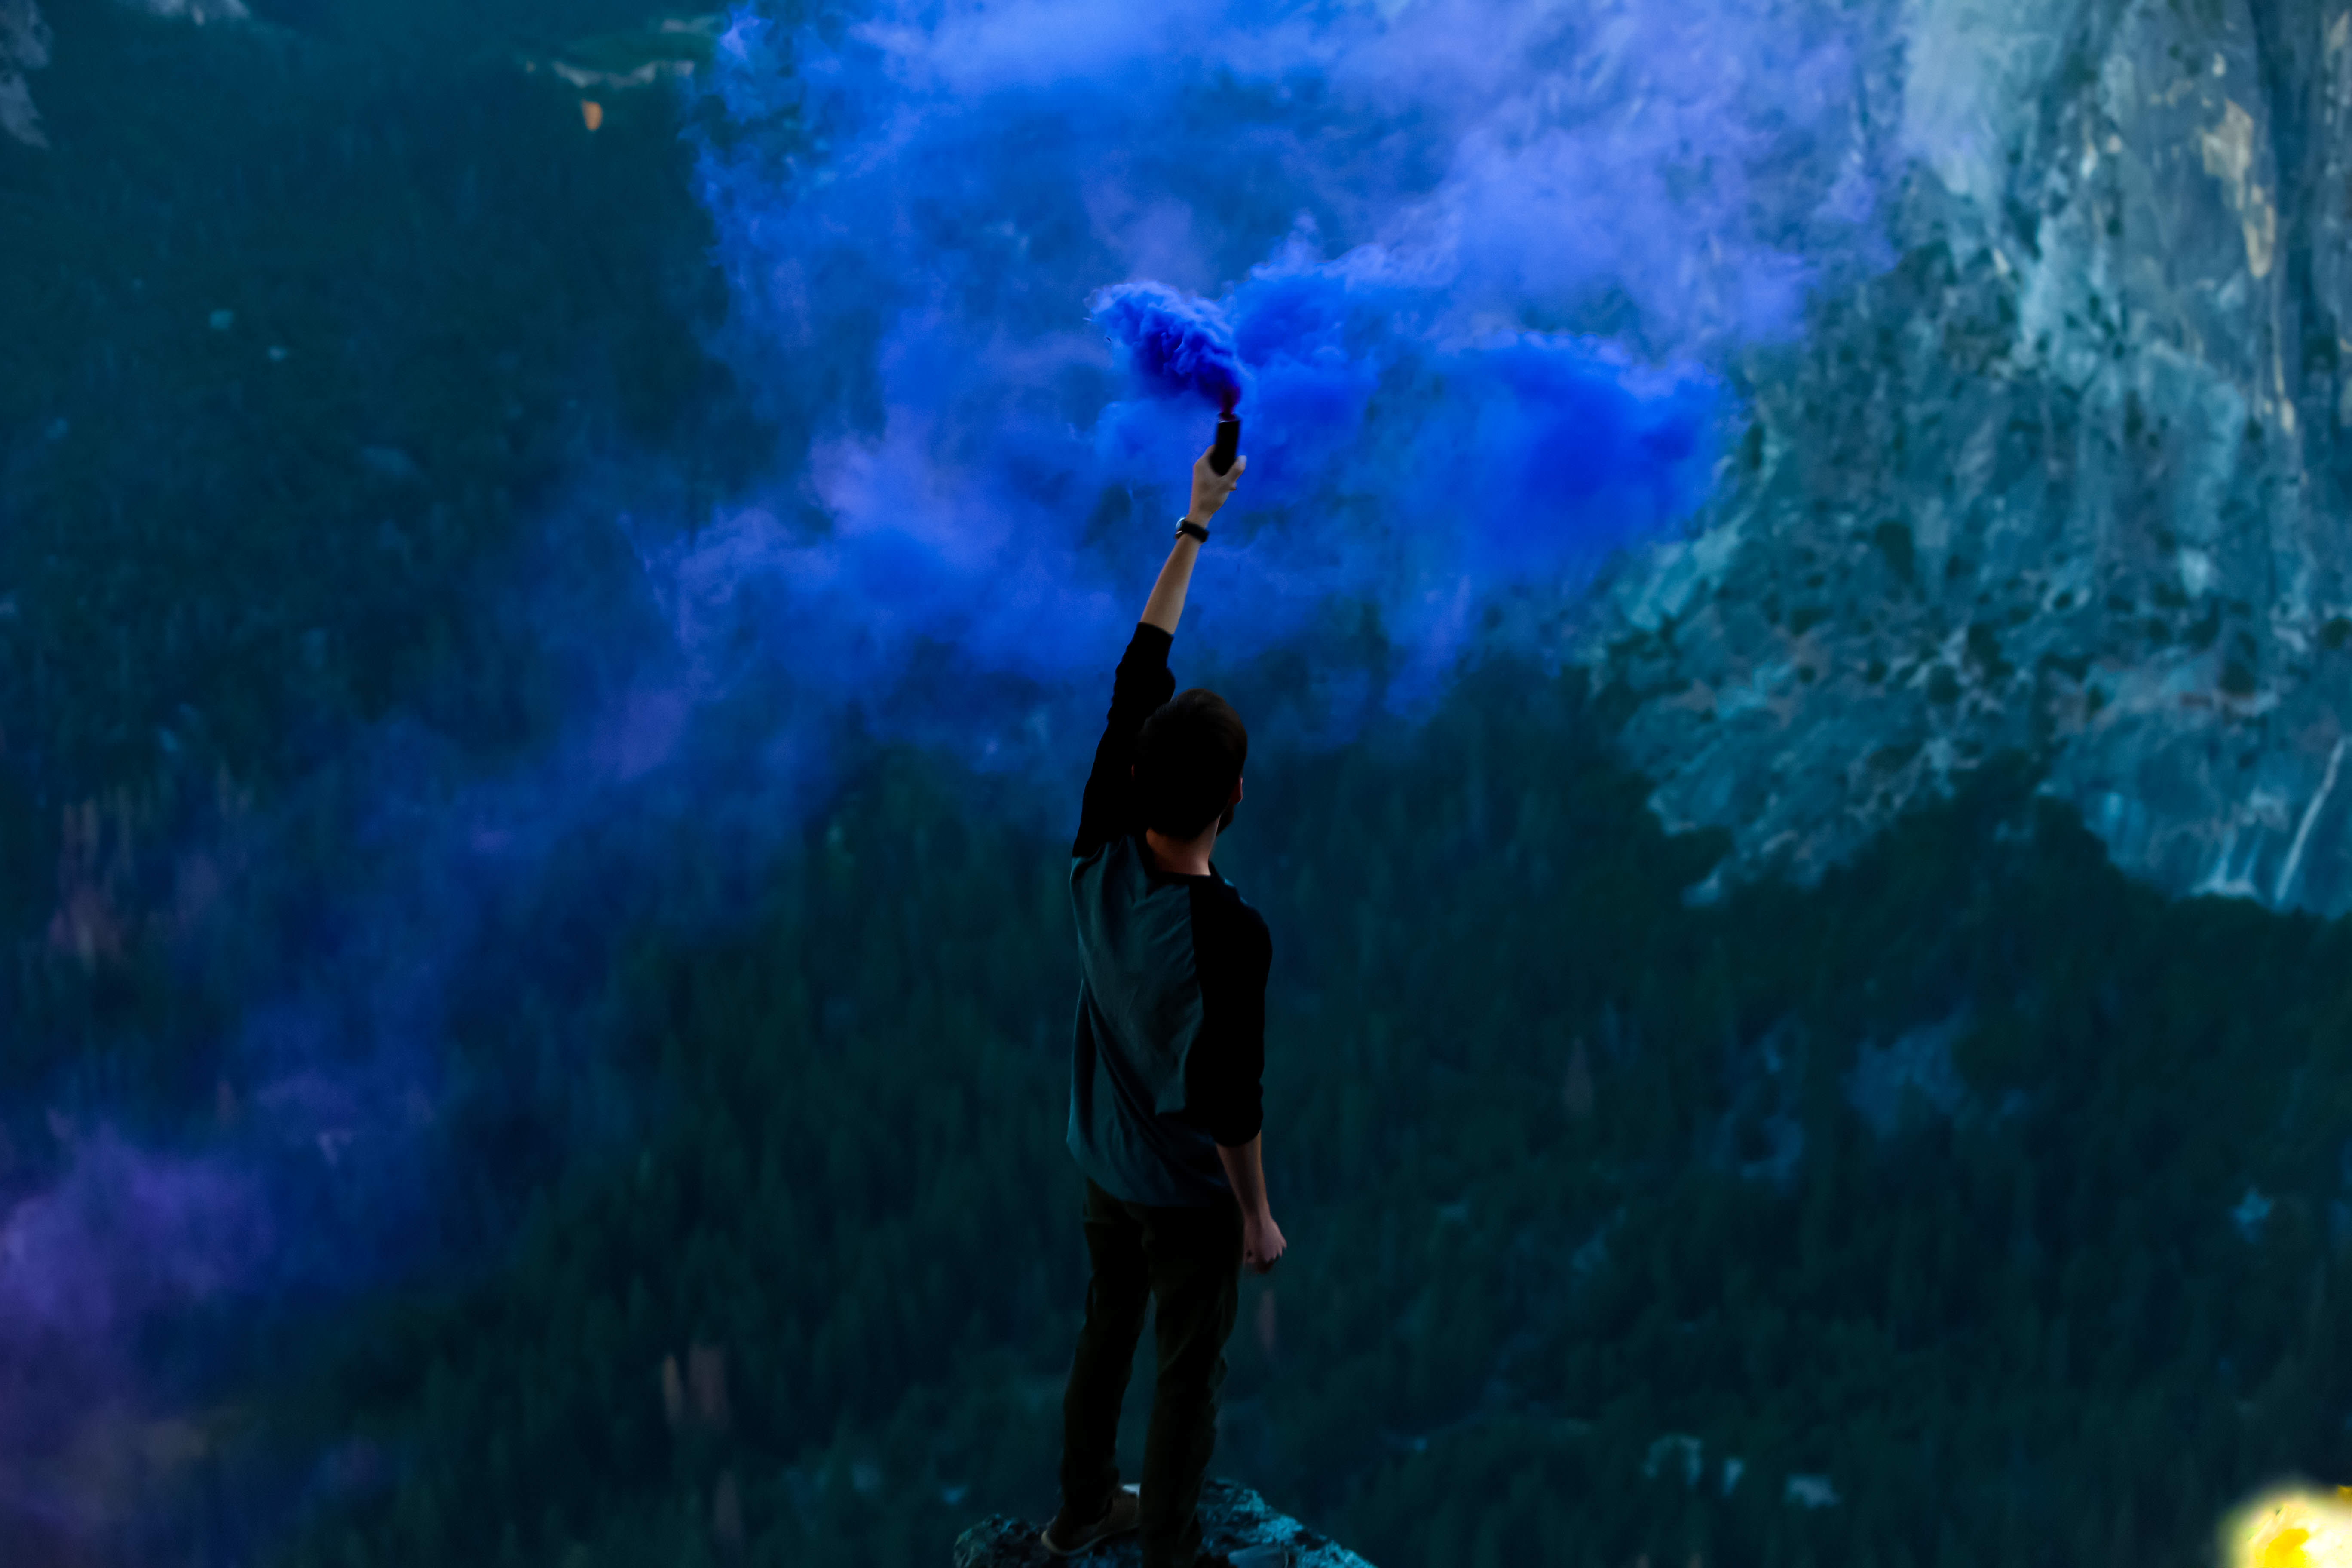 Man Holding Bottle With Blue Smoke Standing on Cliff during Daytime ...